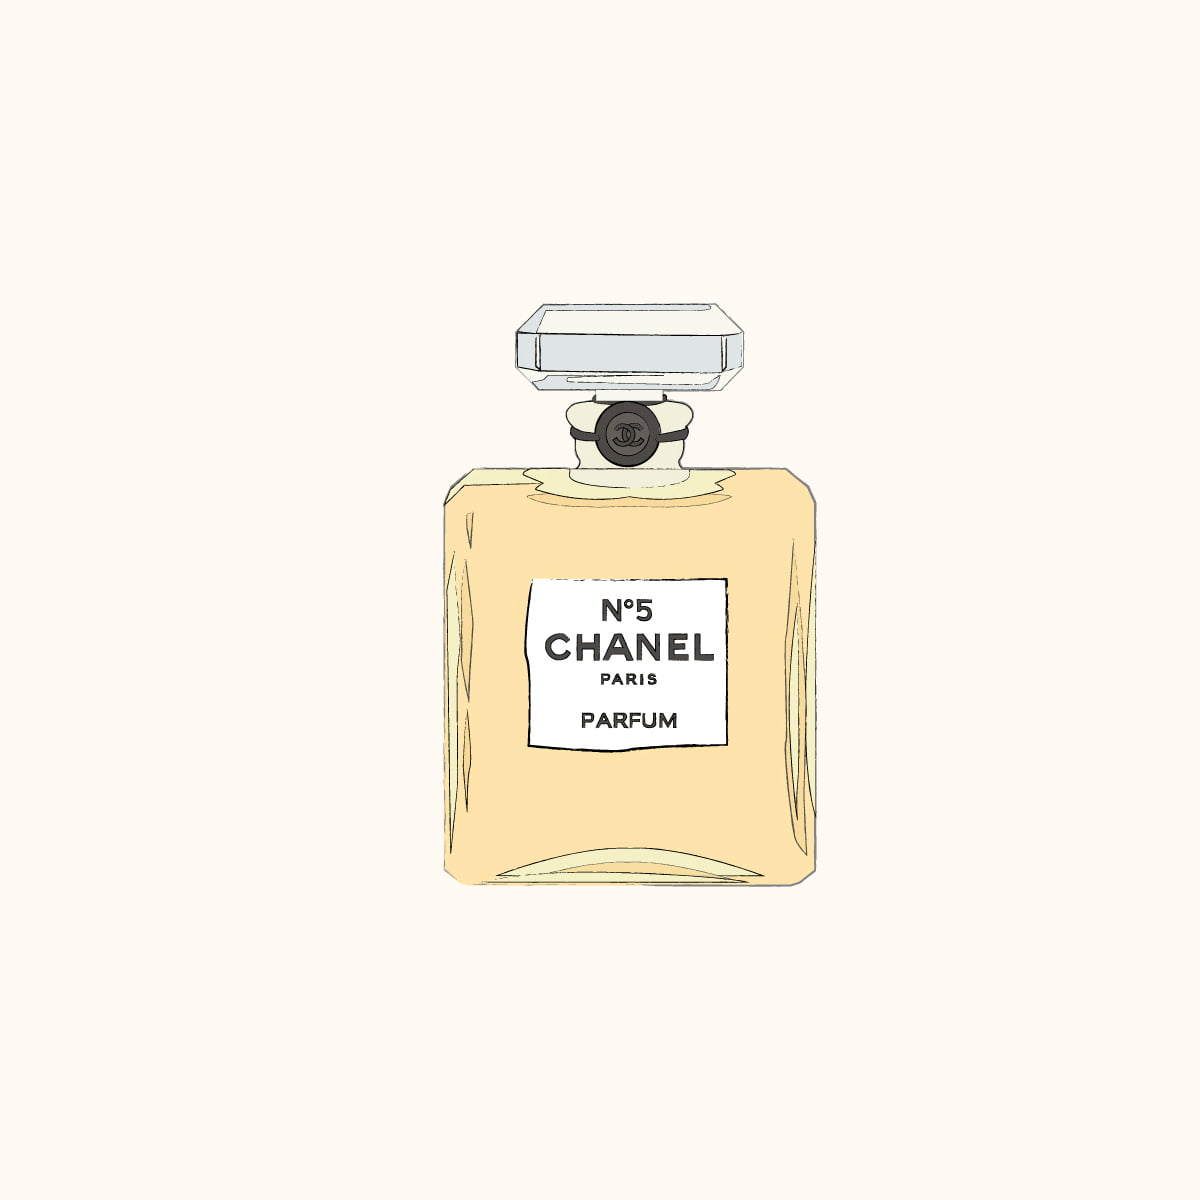 Illustratie Chanel